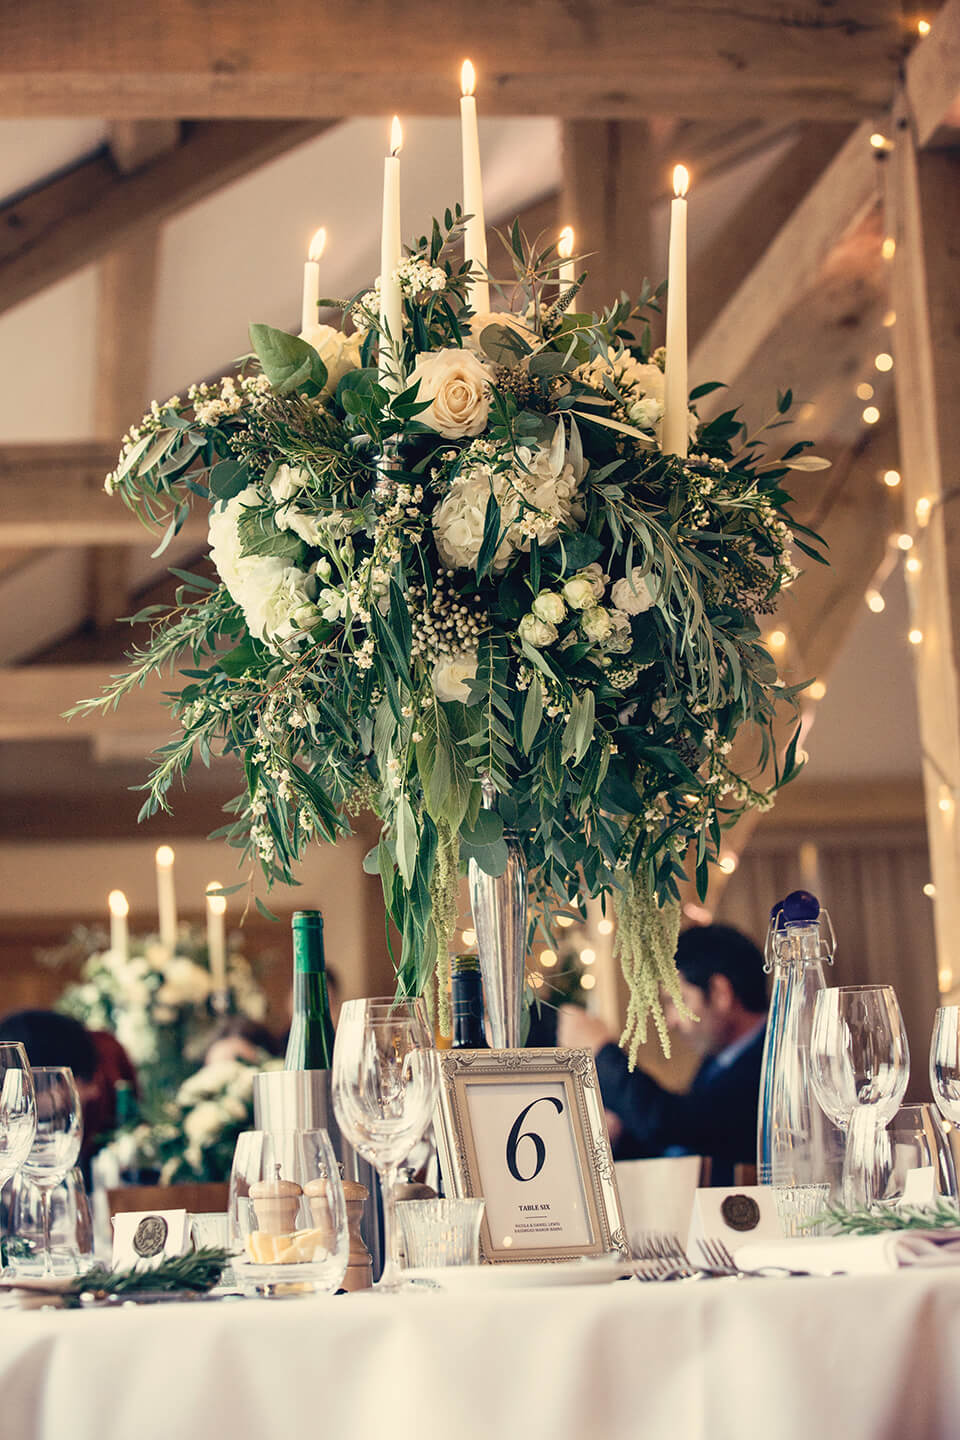 Huge flower arrangements decorated the candelabras on each of the tables – wedding ideas